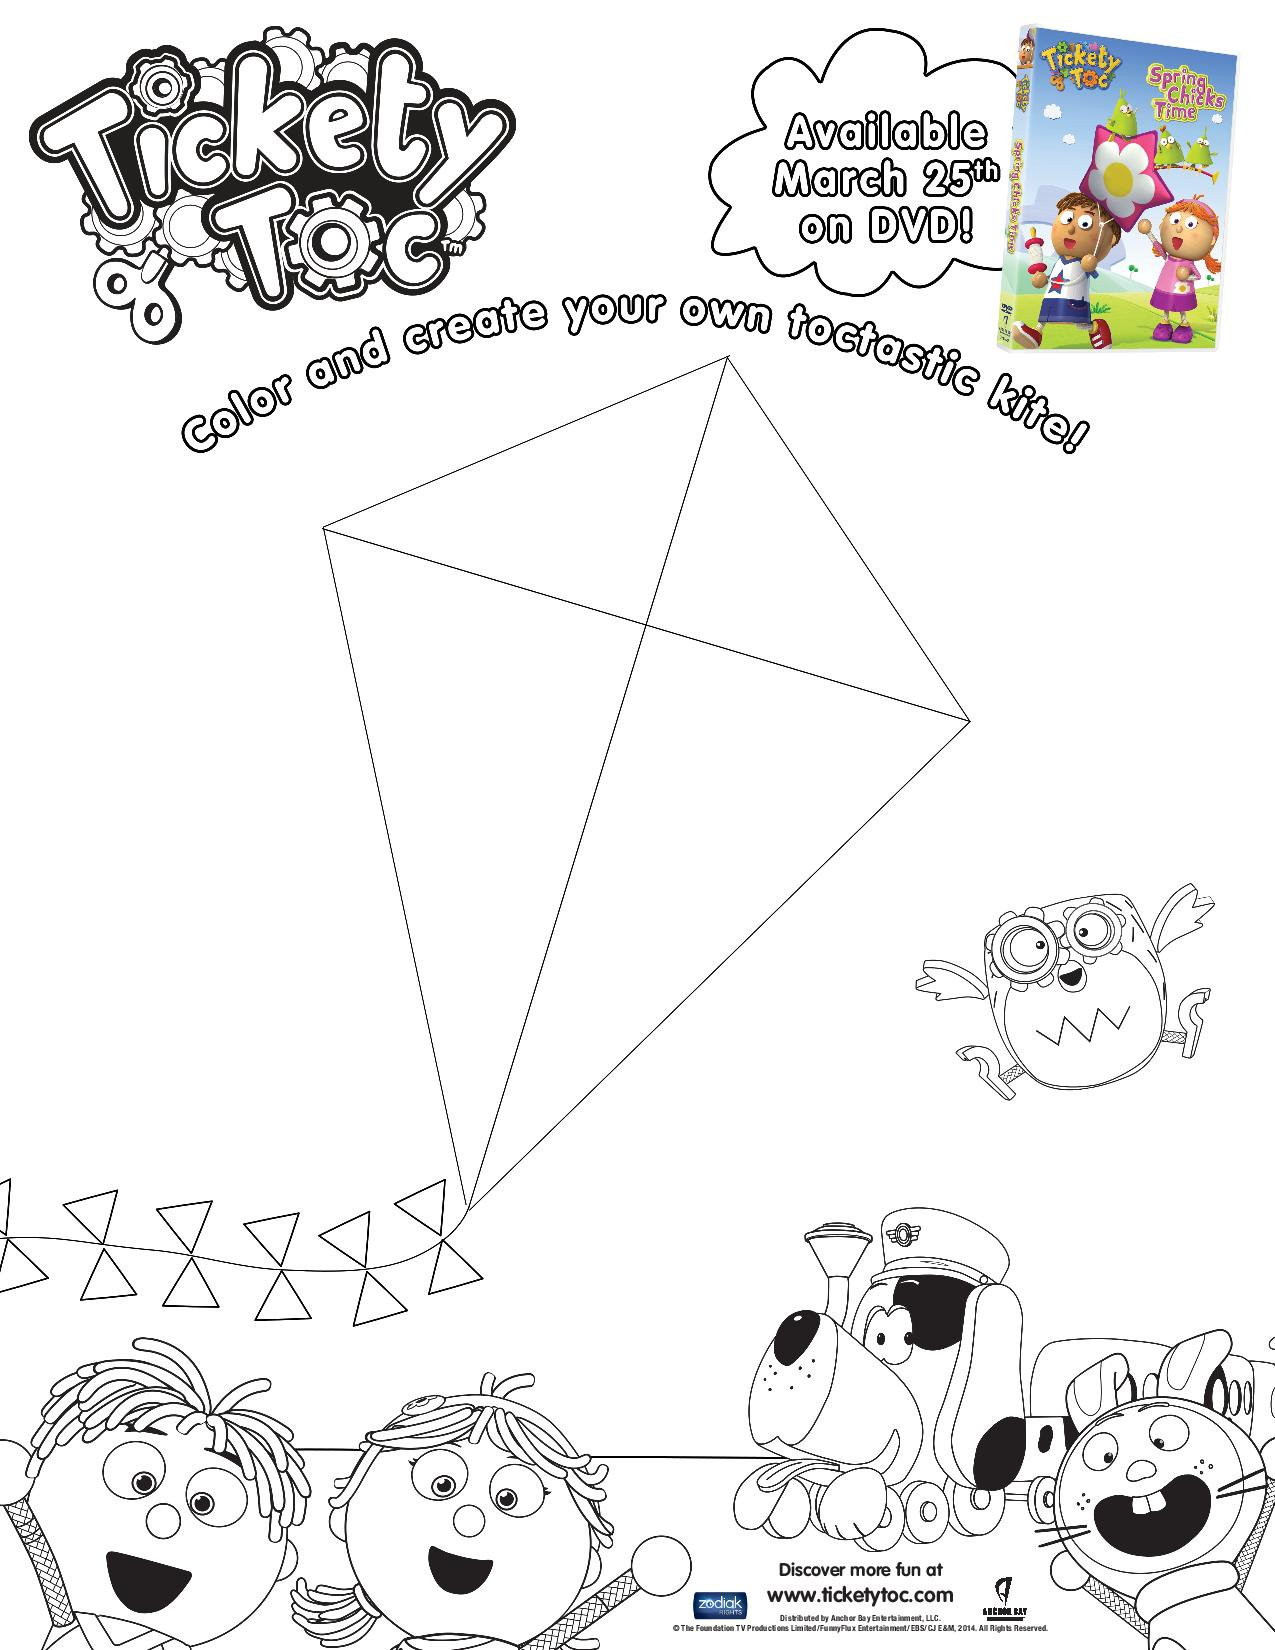 Free printable kite coloring pages - Pr Printable Coloring Kites Tickety Toc Design Your Own Kite Coloring Pre Page 001